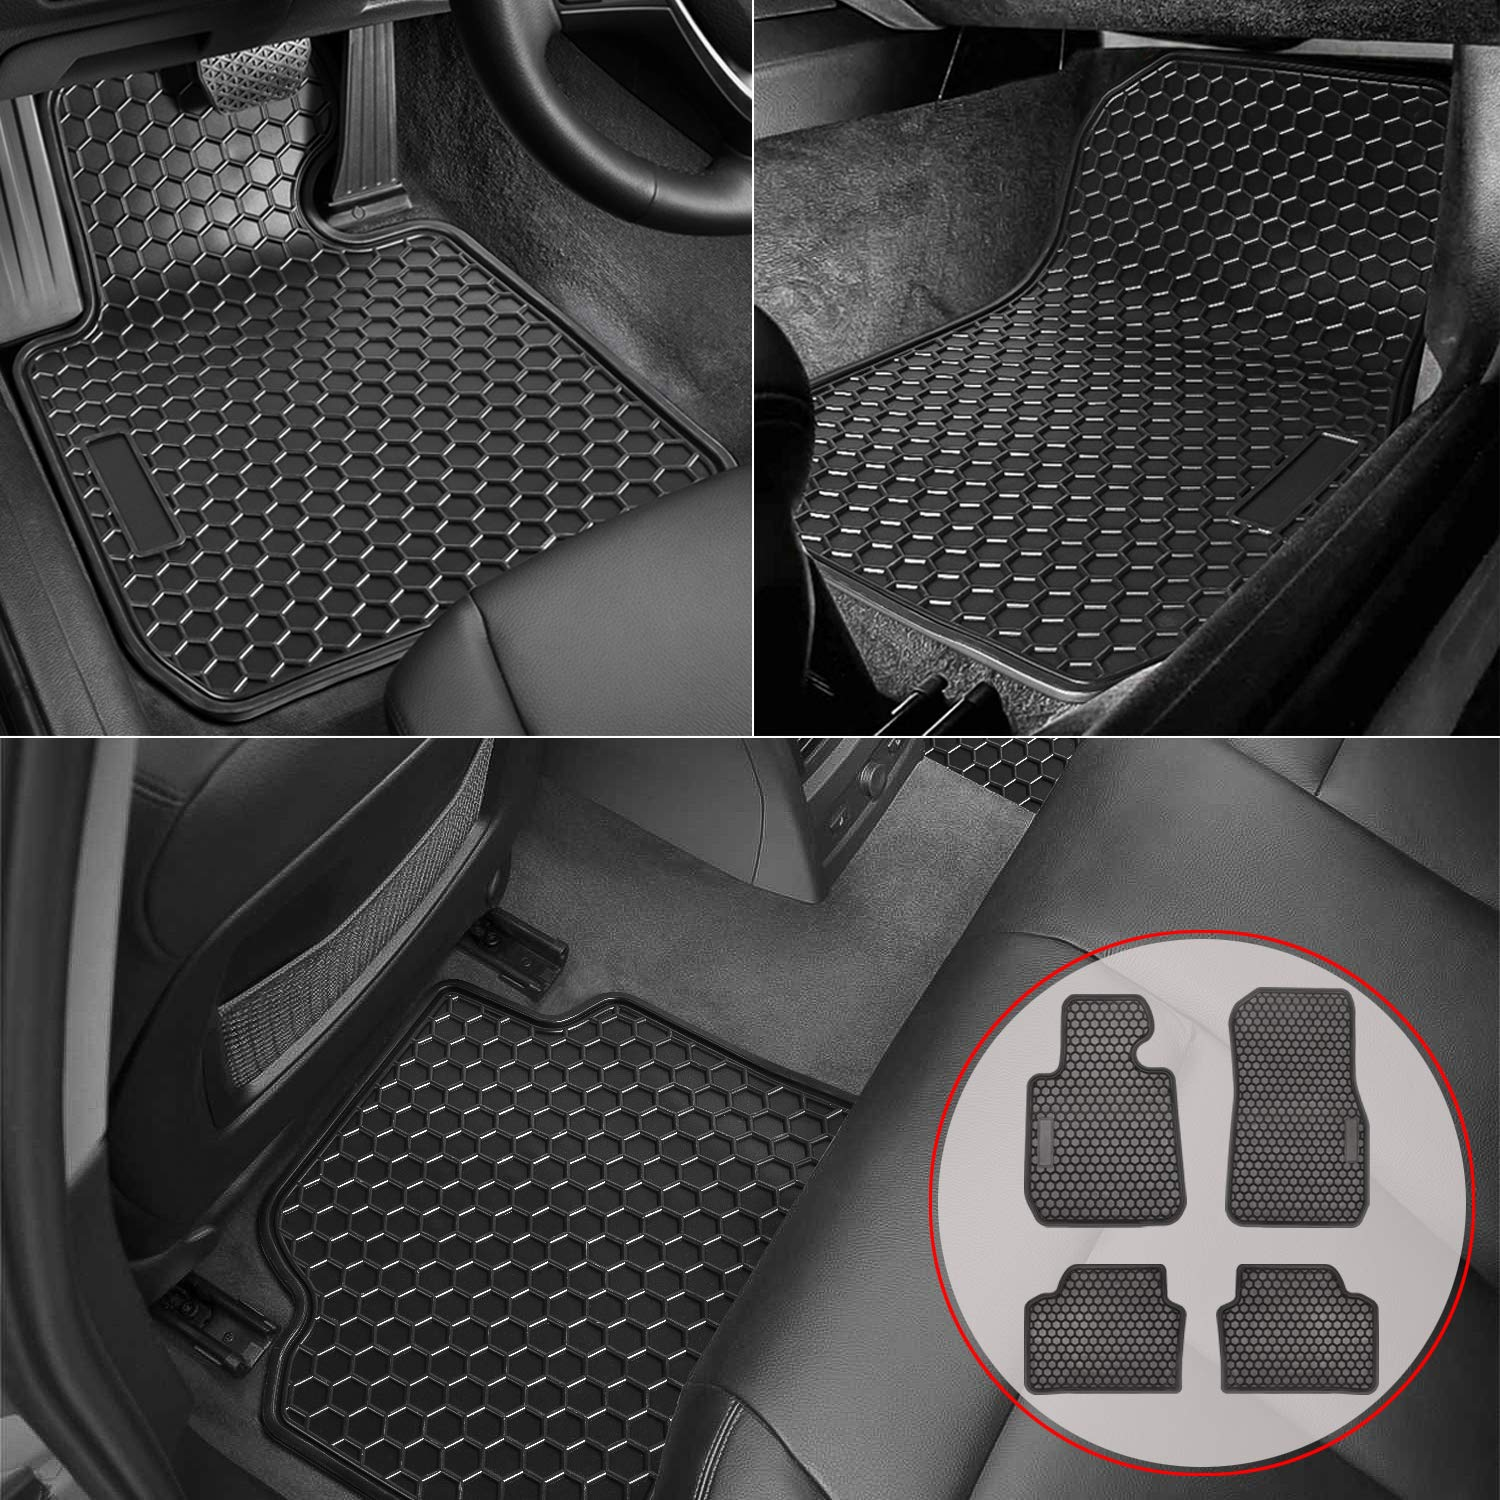 F80 M3 Custom Fit Front /& 2nd Row Liner Environmentally Friendly Heavy Duty Rubber All Weather Protection Odorless Bonbo Floor Mats for BMW 3 Series 2012-2018 F30 320i 328i 335i /& 2015 Pack of 4